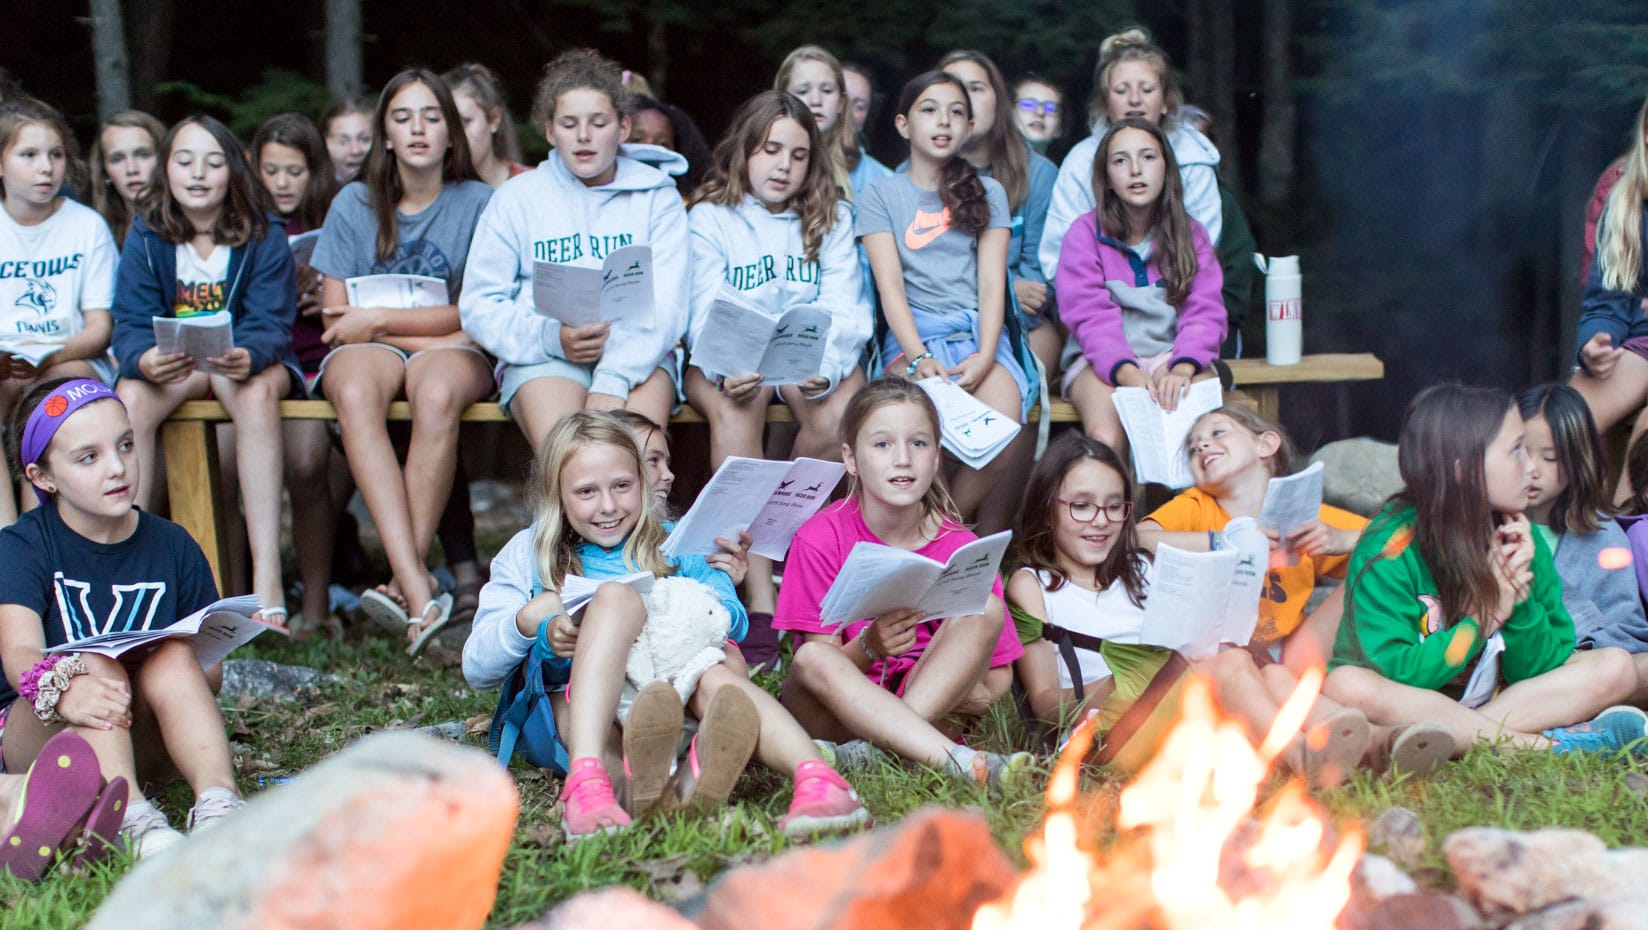 Deer Run campers singing worship songs by a campfire